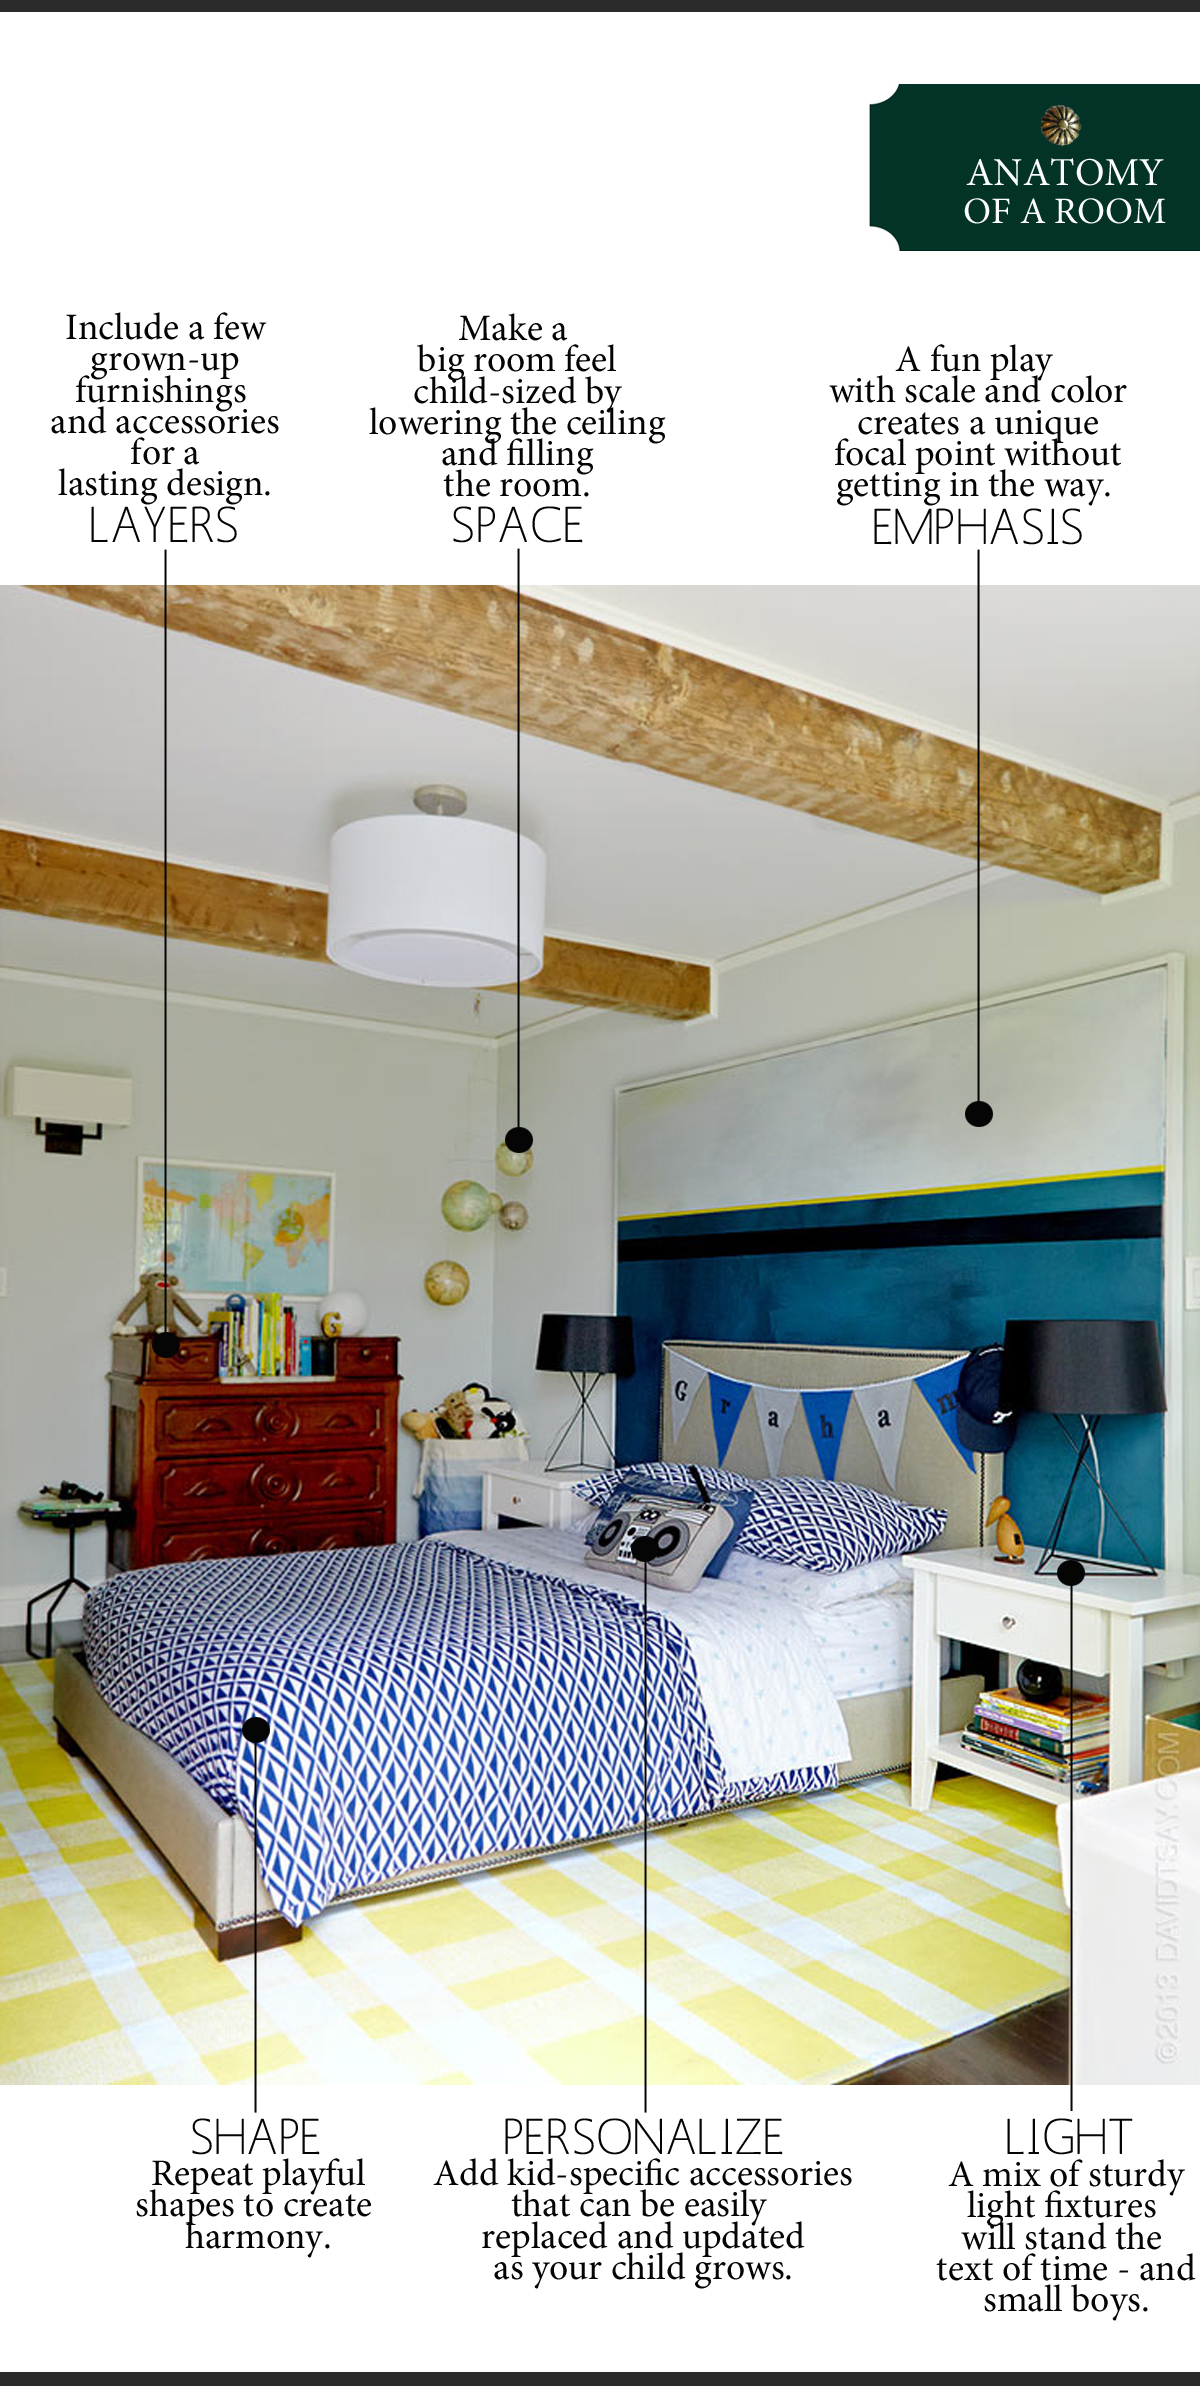 Anatomy of a Playful (But Timeless) Bedroom | The Anatomy of Design